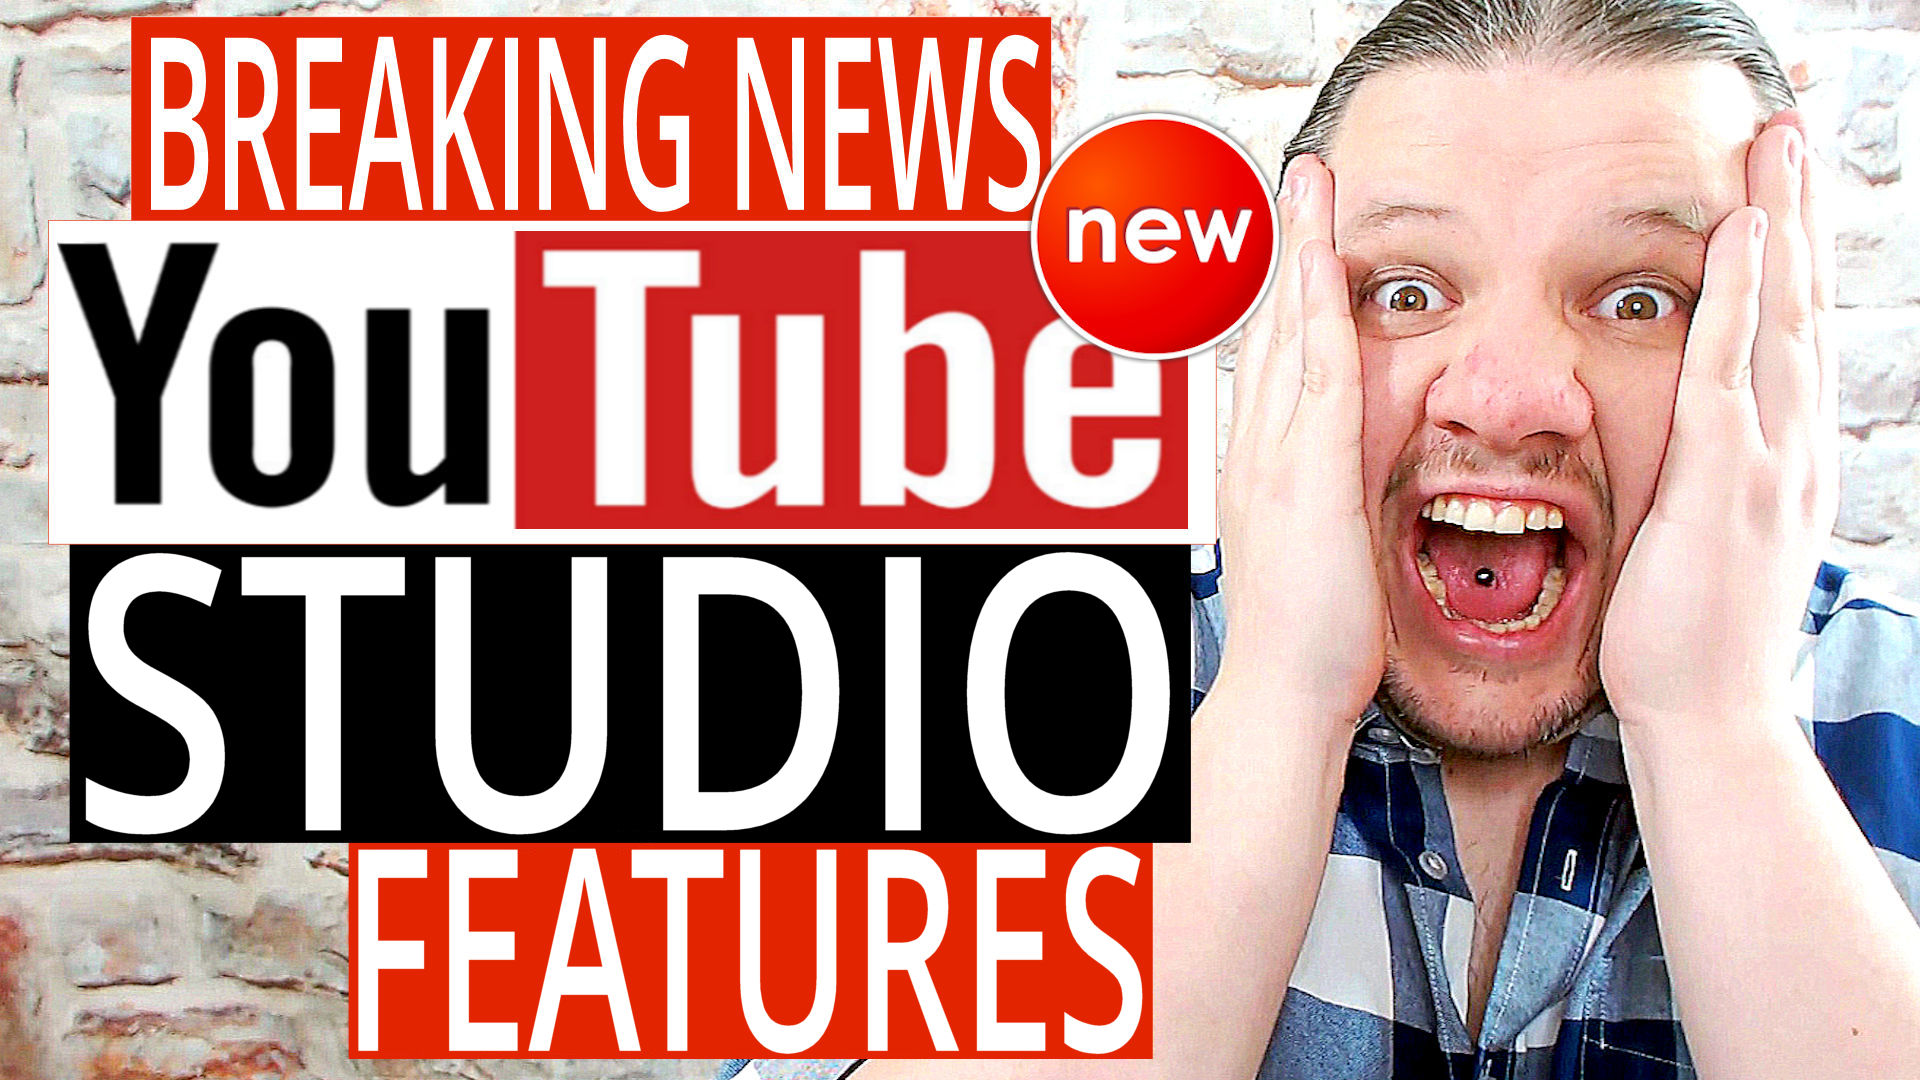 breaking news,new youtube studio,new youtube studio beta update,new youtube studio beta,new youtube studio tutorial,youtube studio beta,youtube studio app,youtube studio setup,youtube studio,new youtube creator studio,new youtube features,impressions,impression ctr,impression click-through rate,unique views,youtube analytics,new youtube analytics,youtube studio analytics,youtube changes,youtube studio update,youtube update,youtube update 2018,youtube,yt